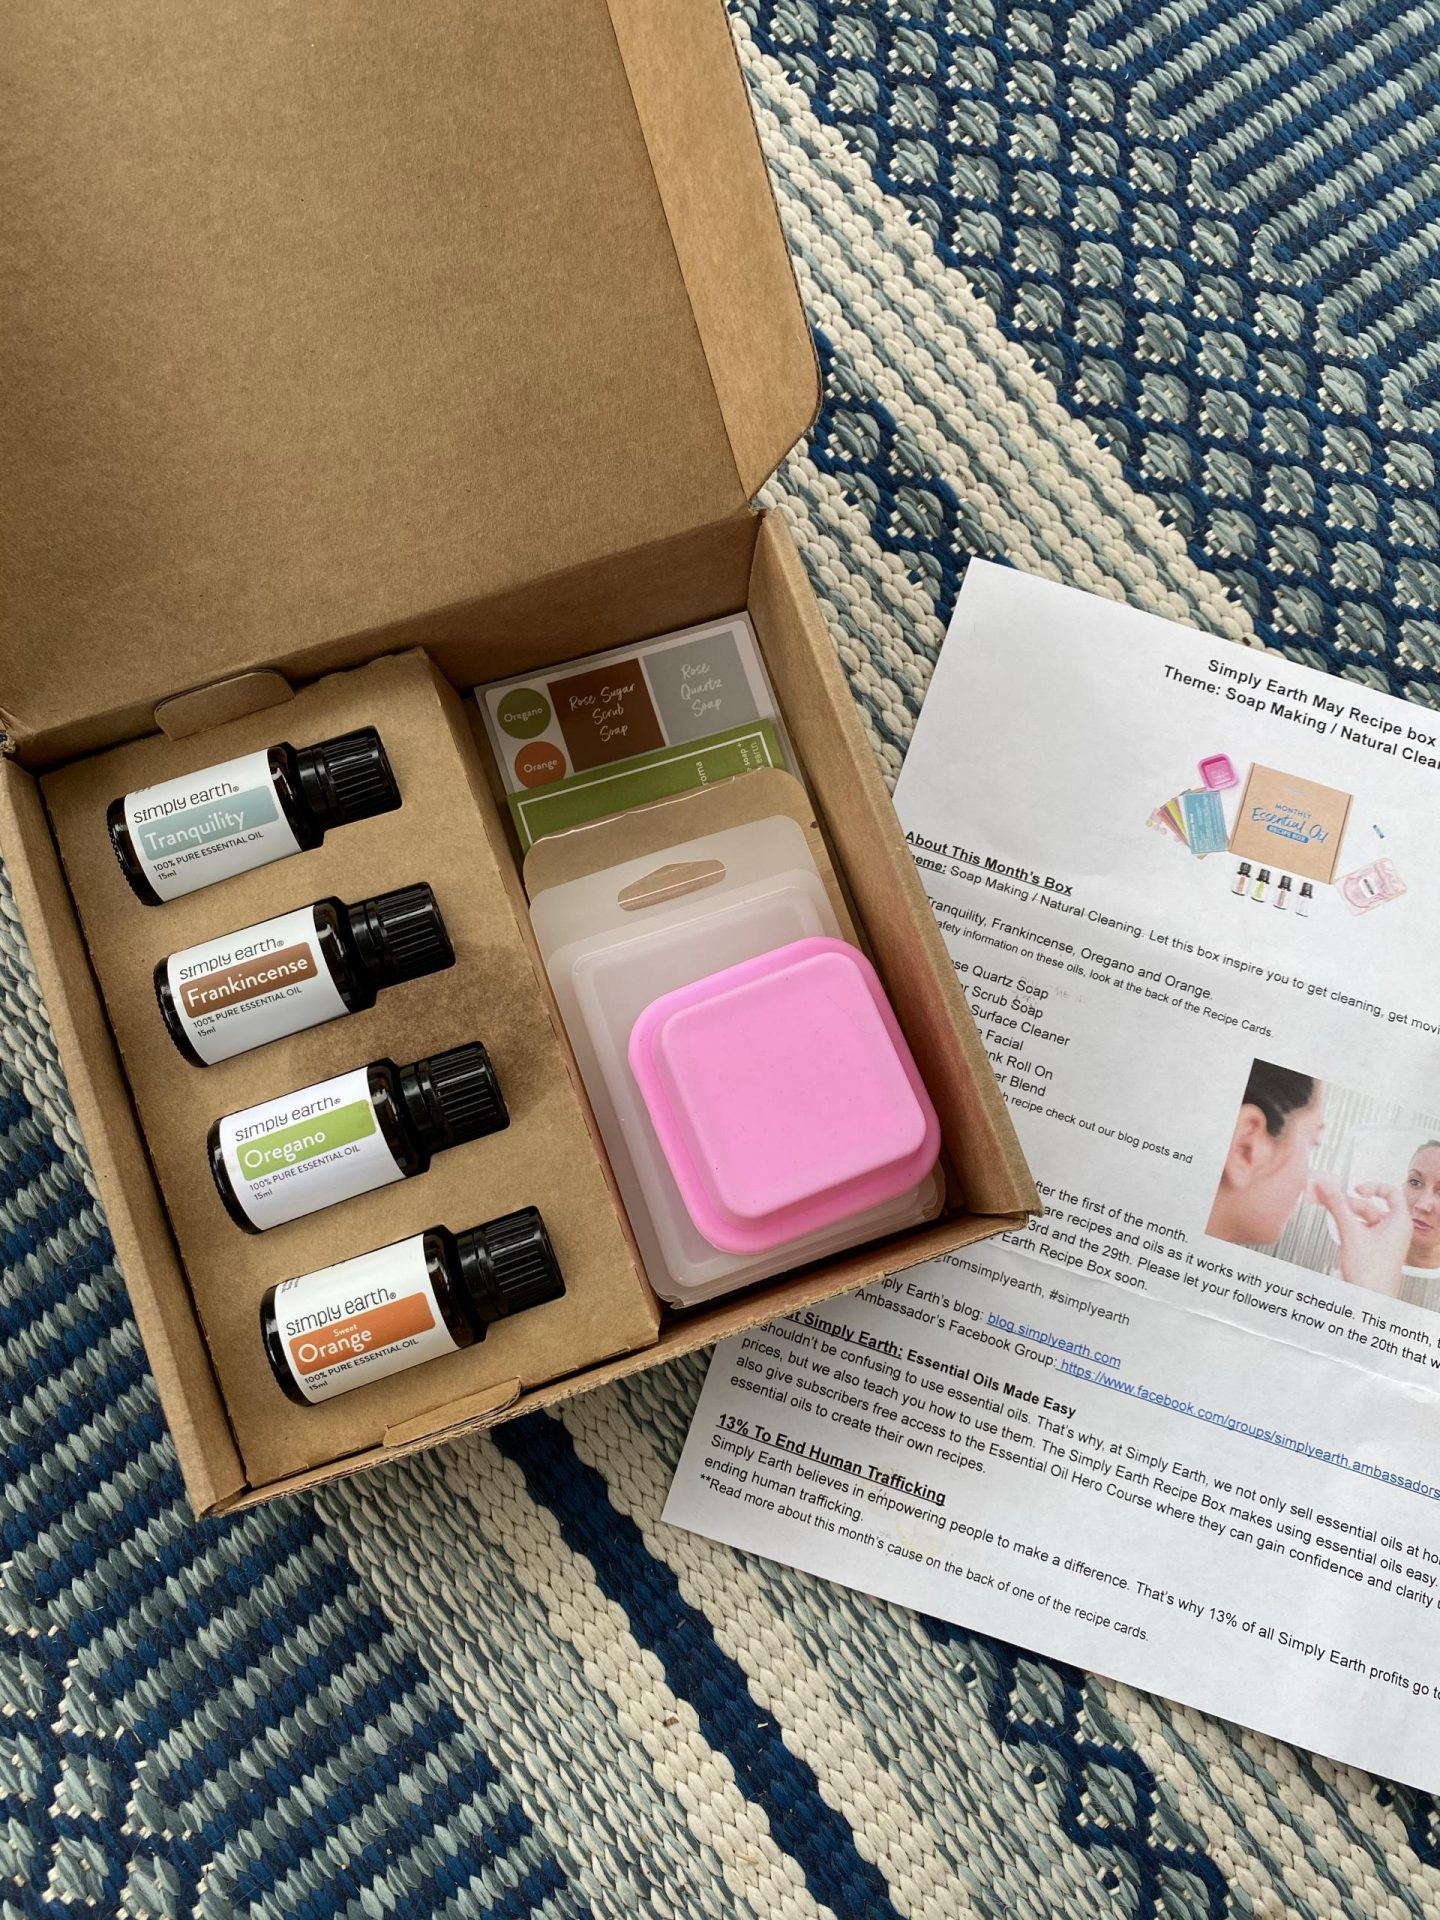 NC blogger Rebecca Lately is sharing her Simply Earth May 2021 box. Check out this month's theme, which is soap and natural cleaning.